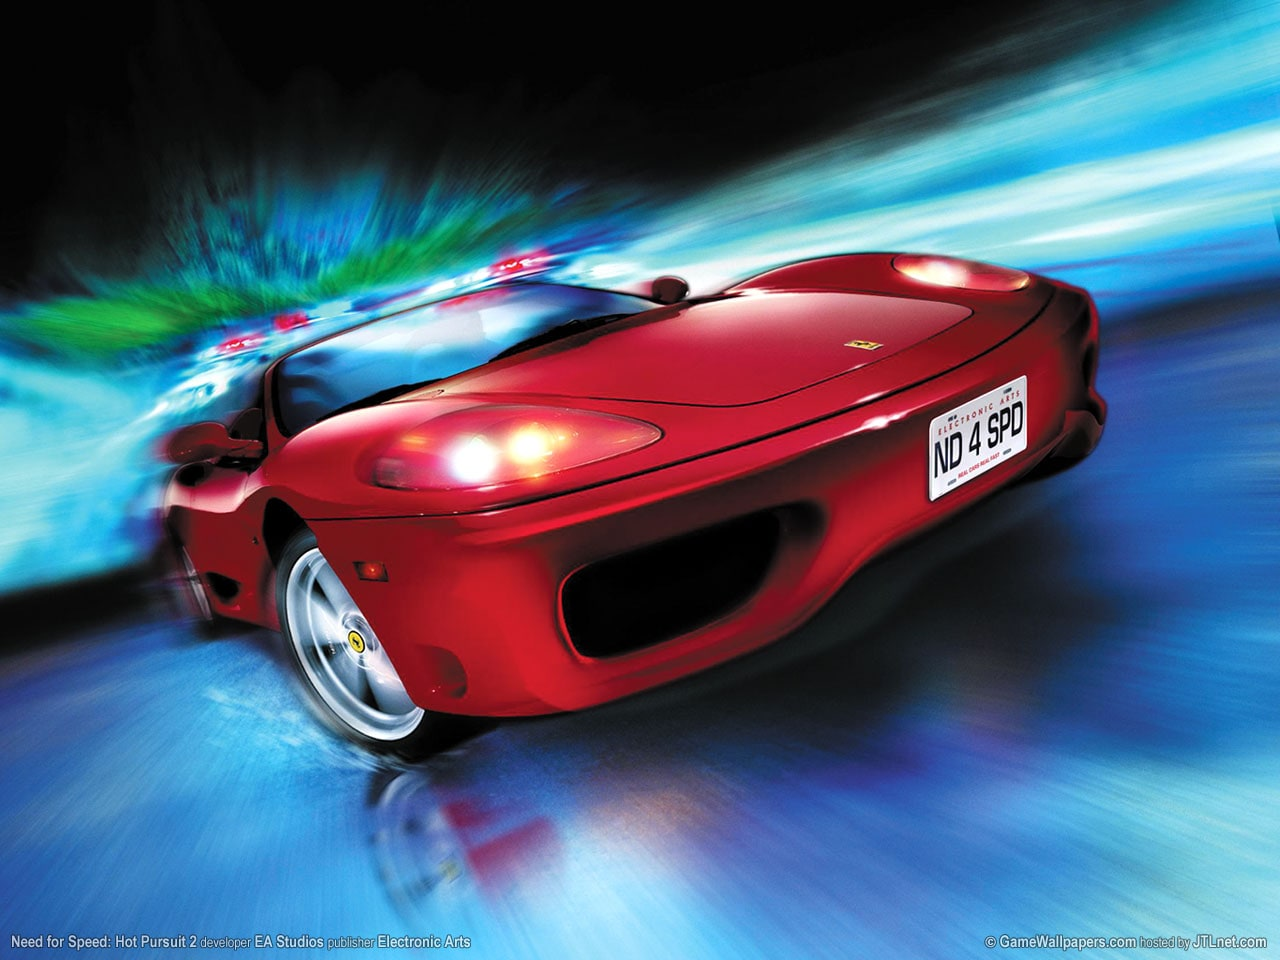 Need For Speed Hot Pursuit 2 Cheats And Codes For Gamecube